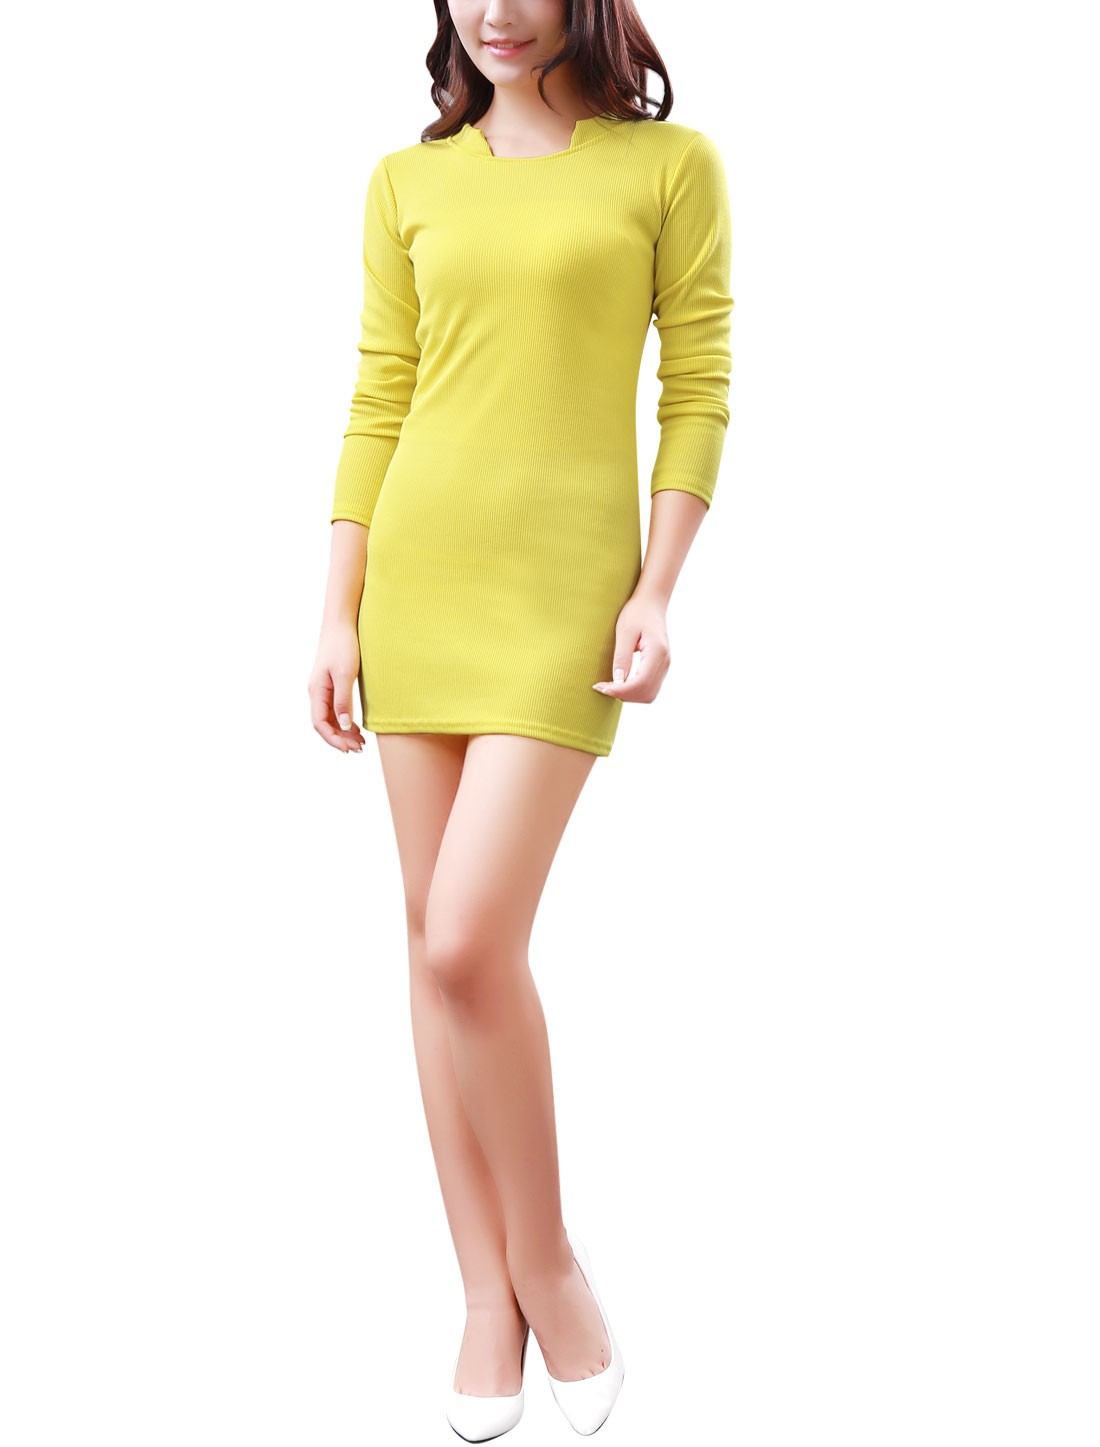 Women Stand Collar Long Sleeves Ribbed Hem Stretchy Knit Dress Yellow S